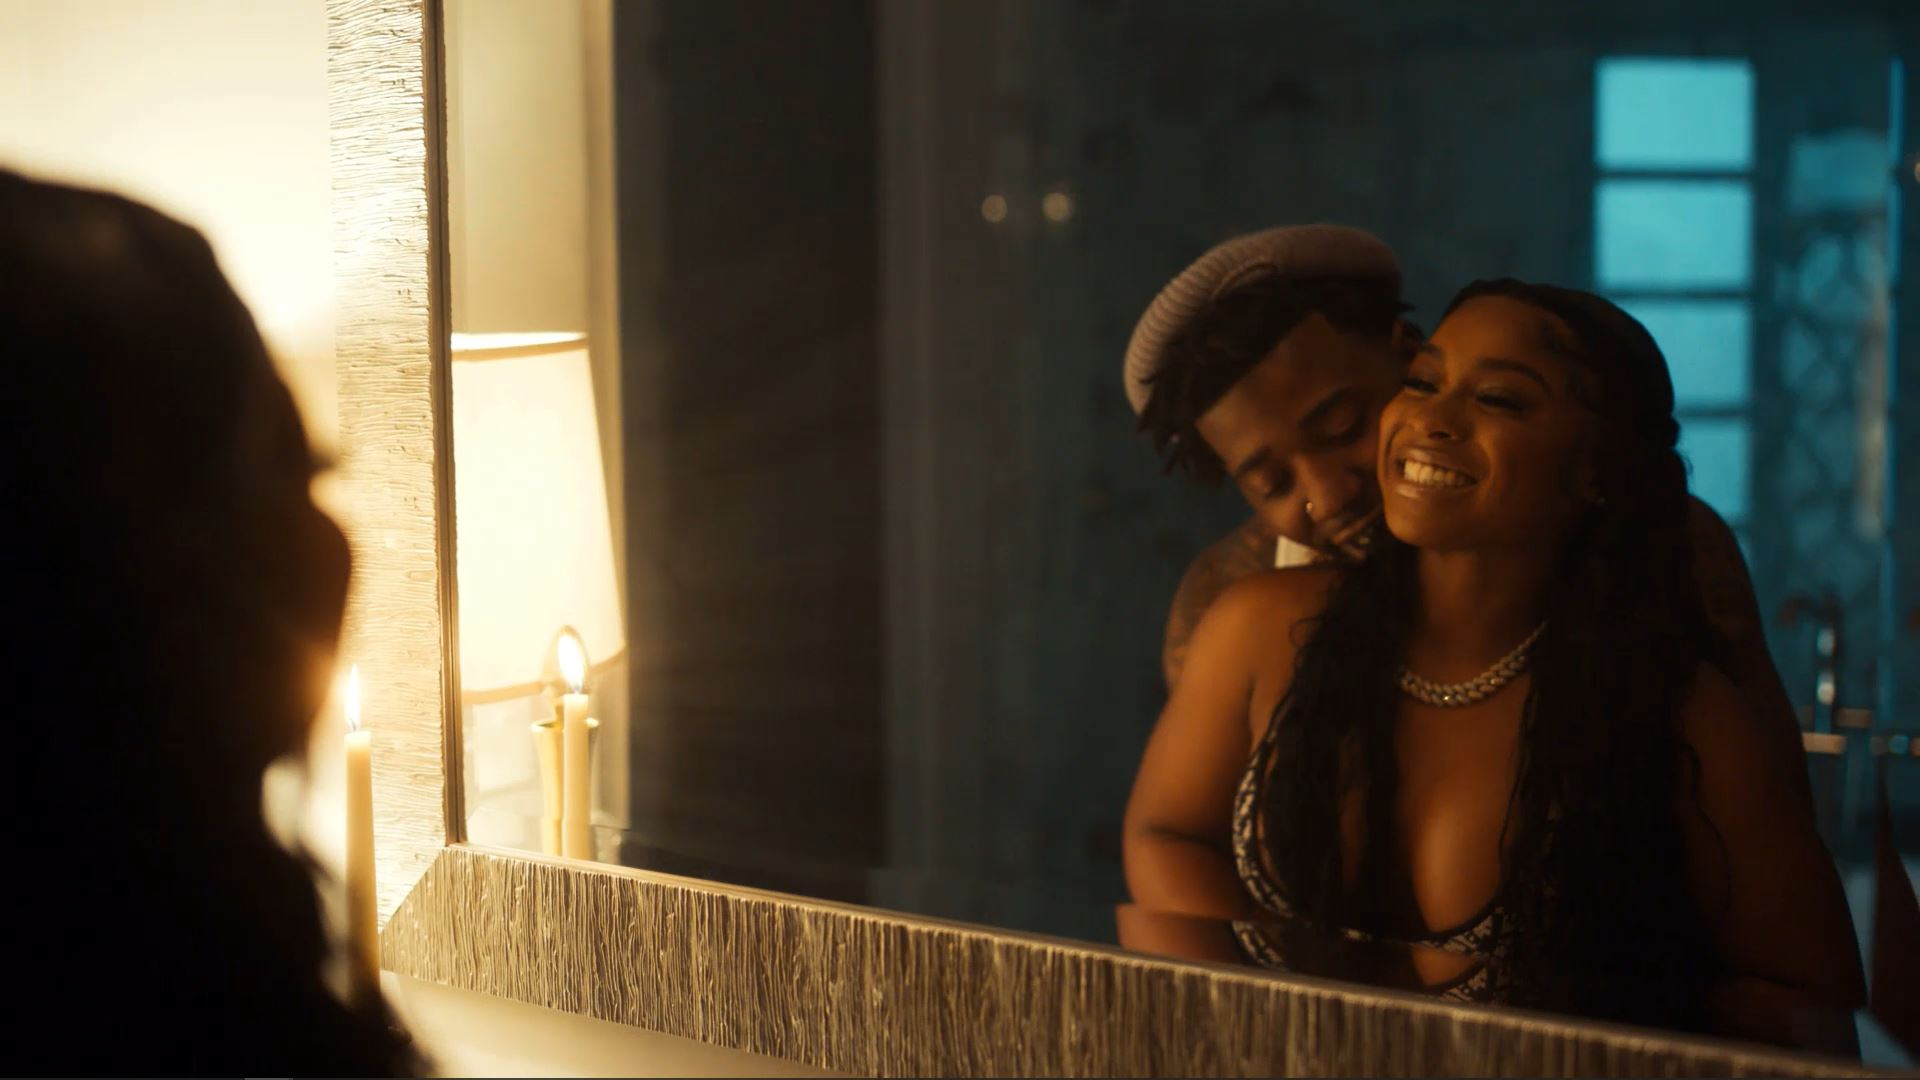 Music Video - YFN Lucci - Both of Us